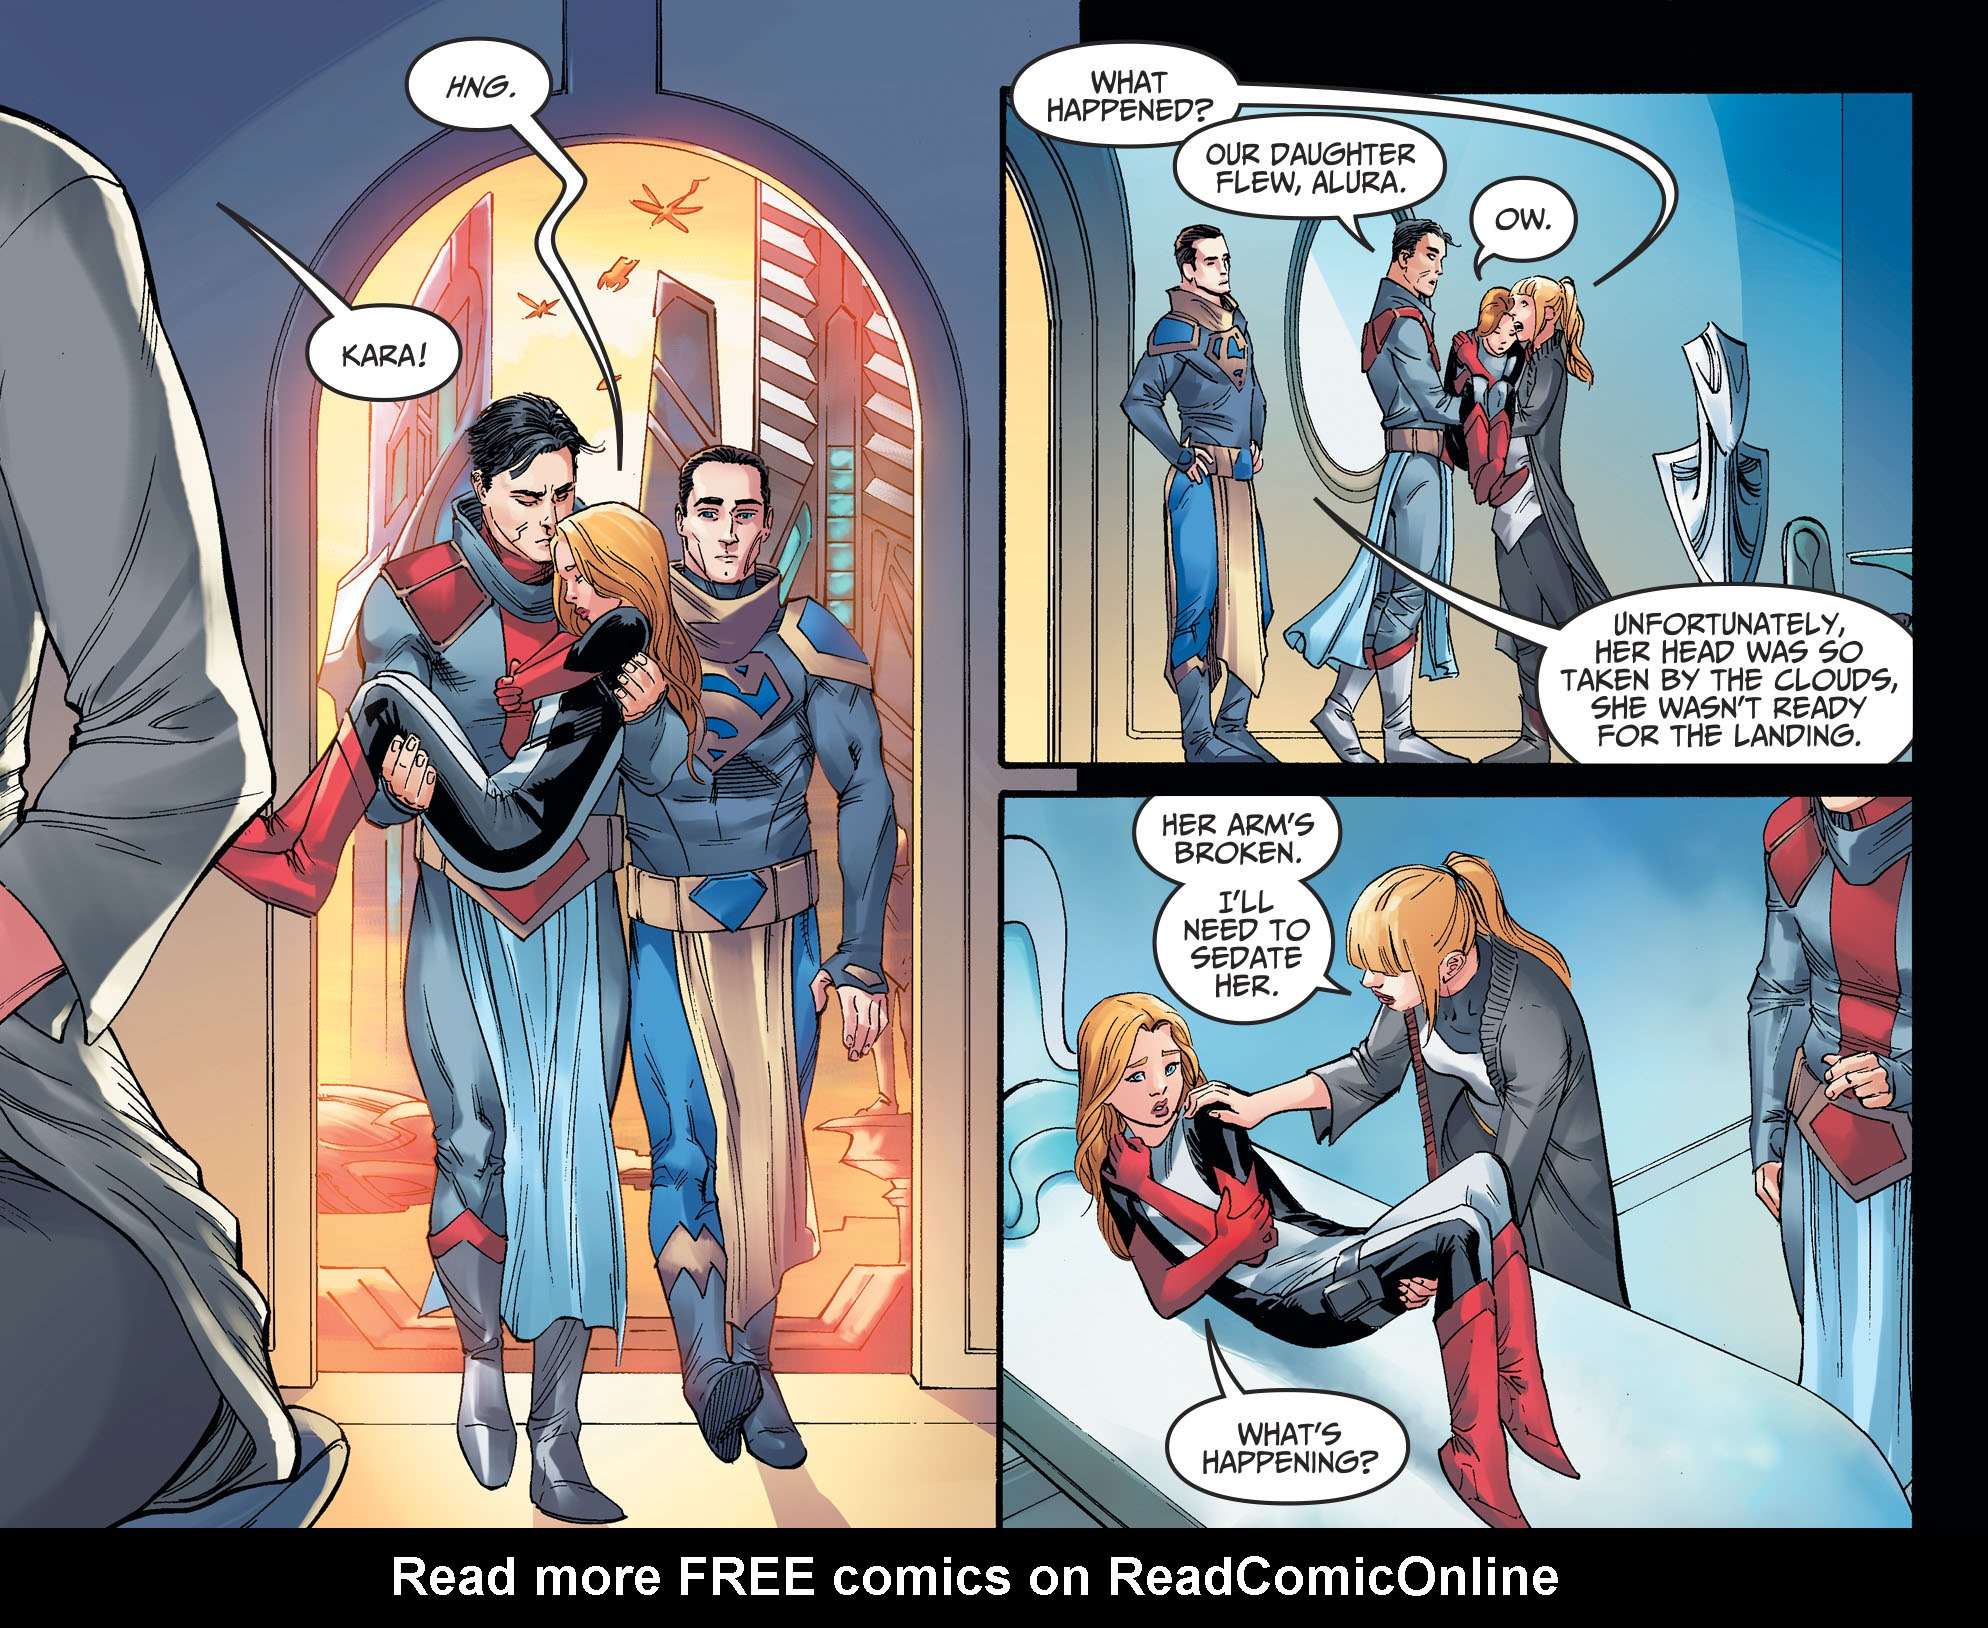 Read online Injustice 2 comic -  Issue #11 - 7